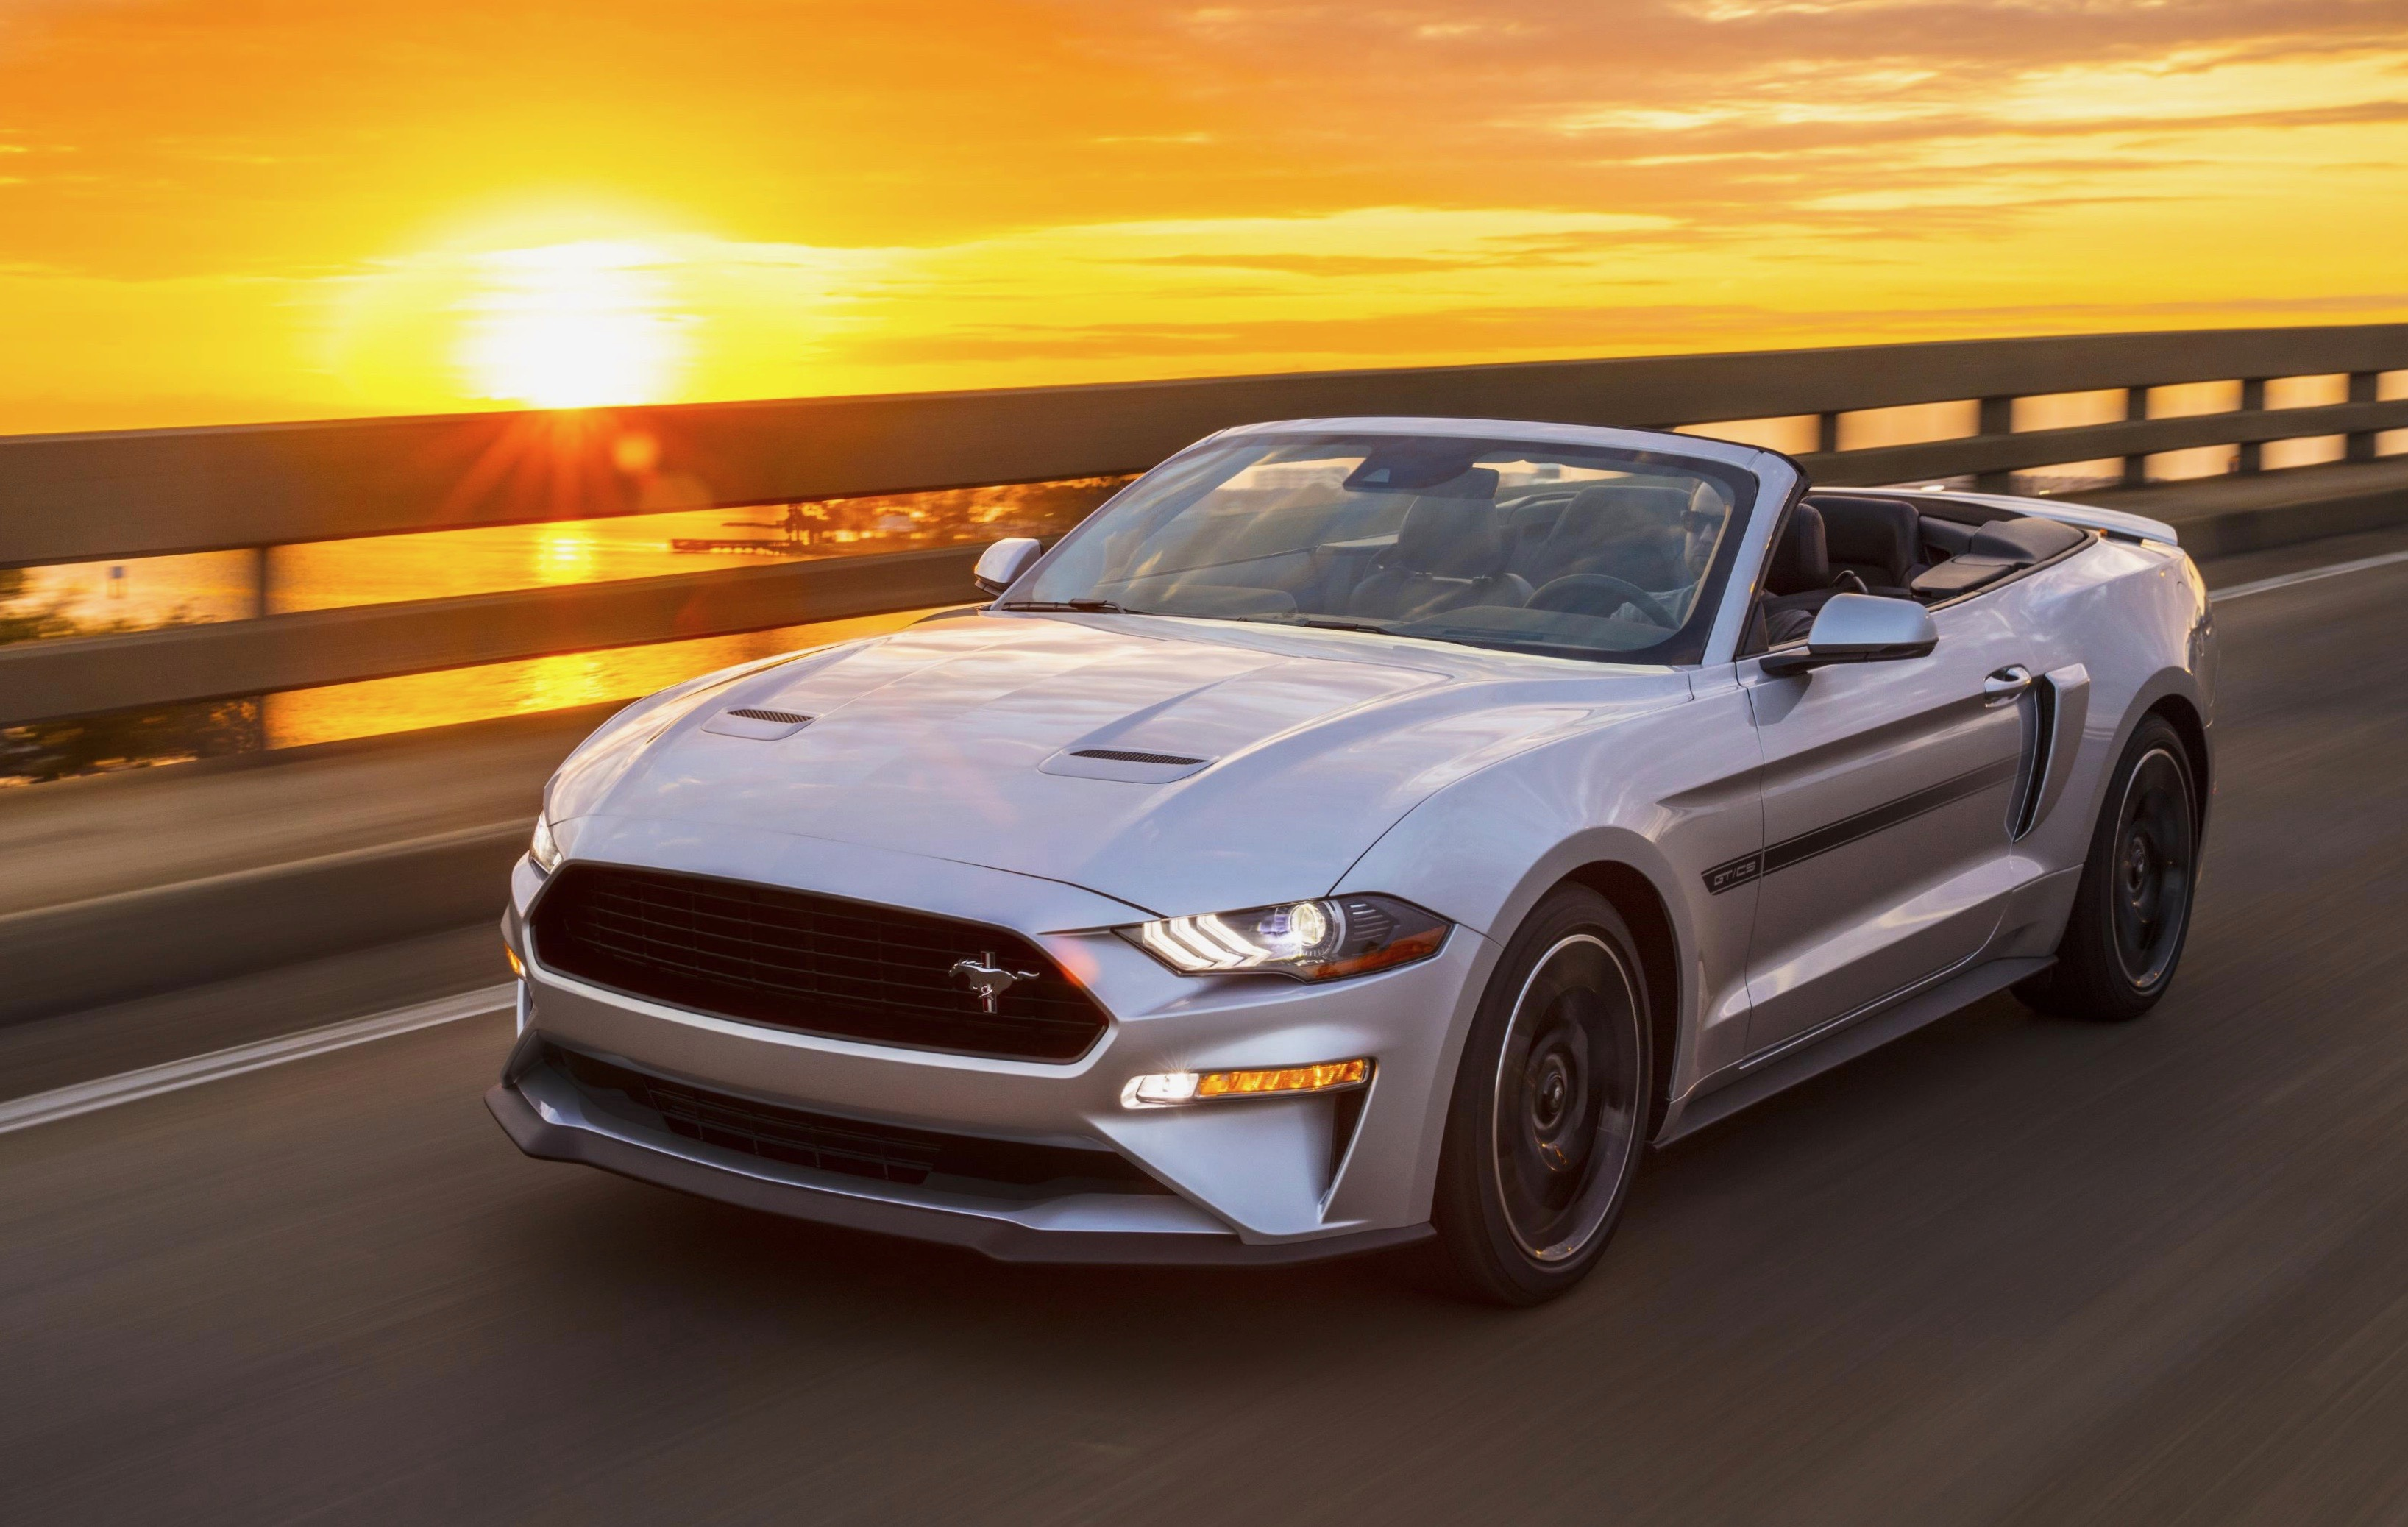 The Ford Mustang GT California Special is back this summer!